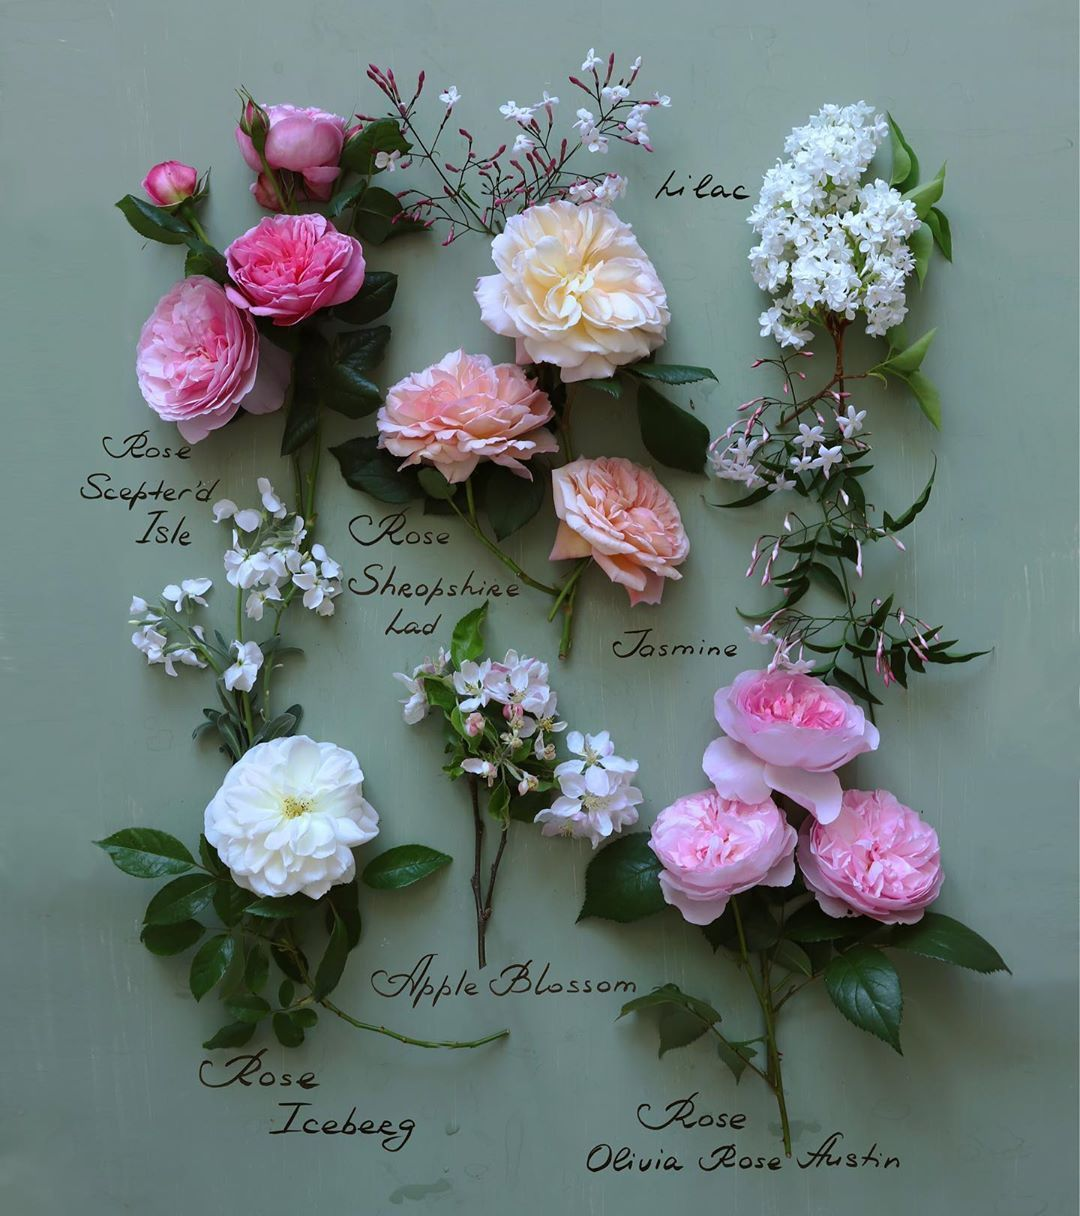 rose, lilac, and jasmine flowers